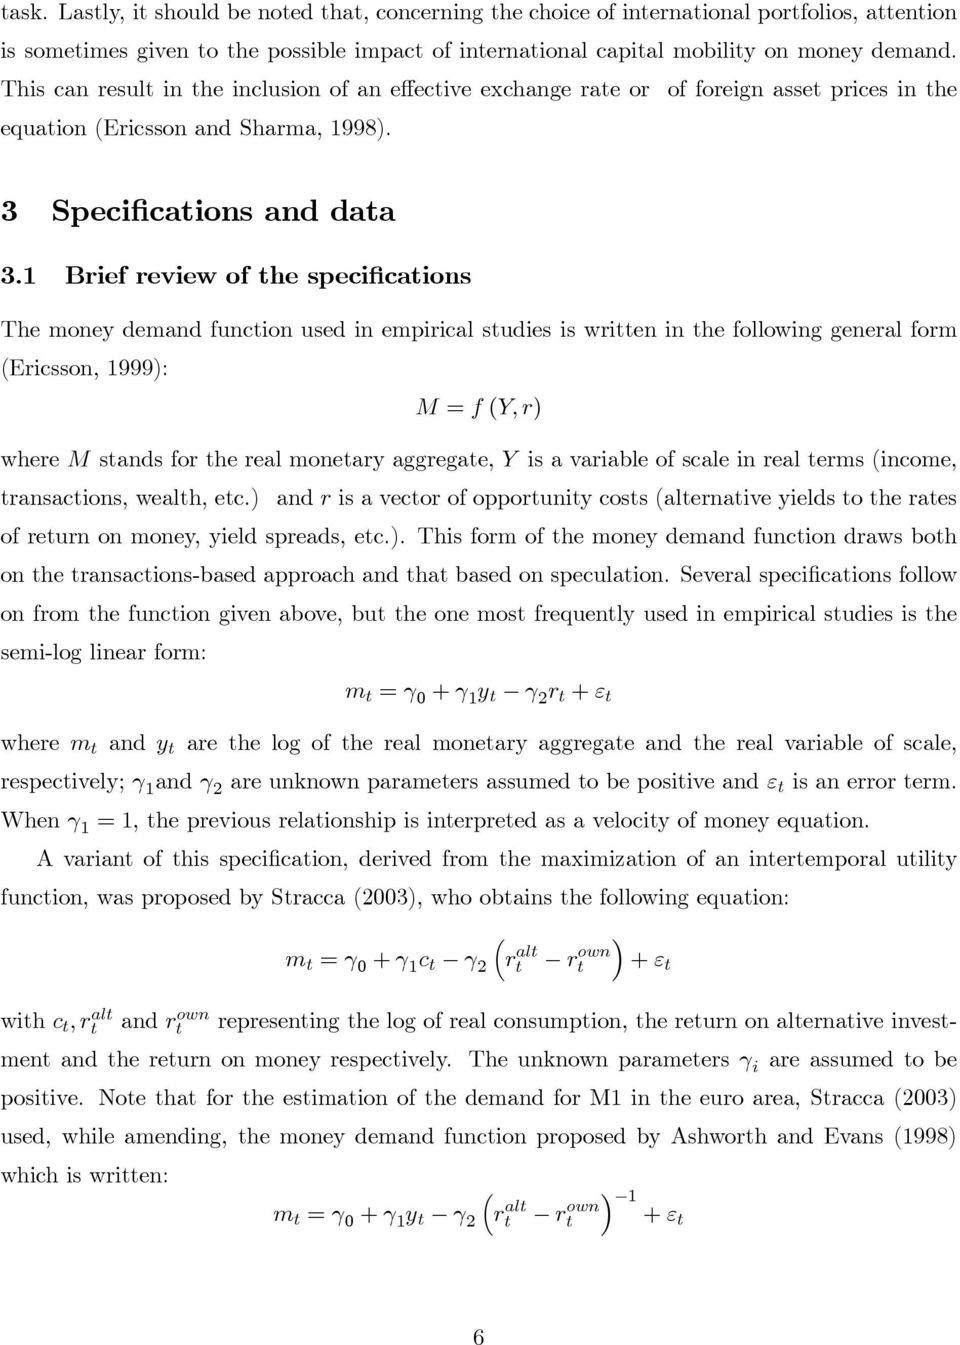 1 Brief review of the specifications The money demand function used in empirical studies is written in the following general form (Ericsson, 1999): M = f (Y,r) where M stands for the real monetary